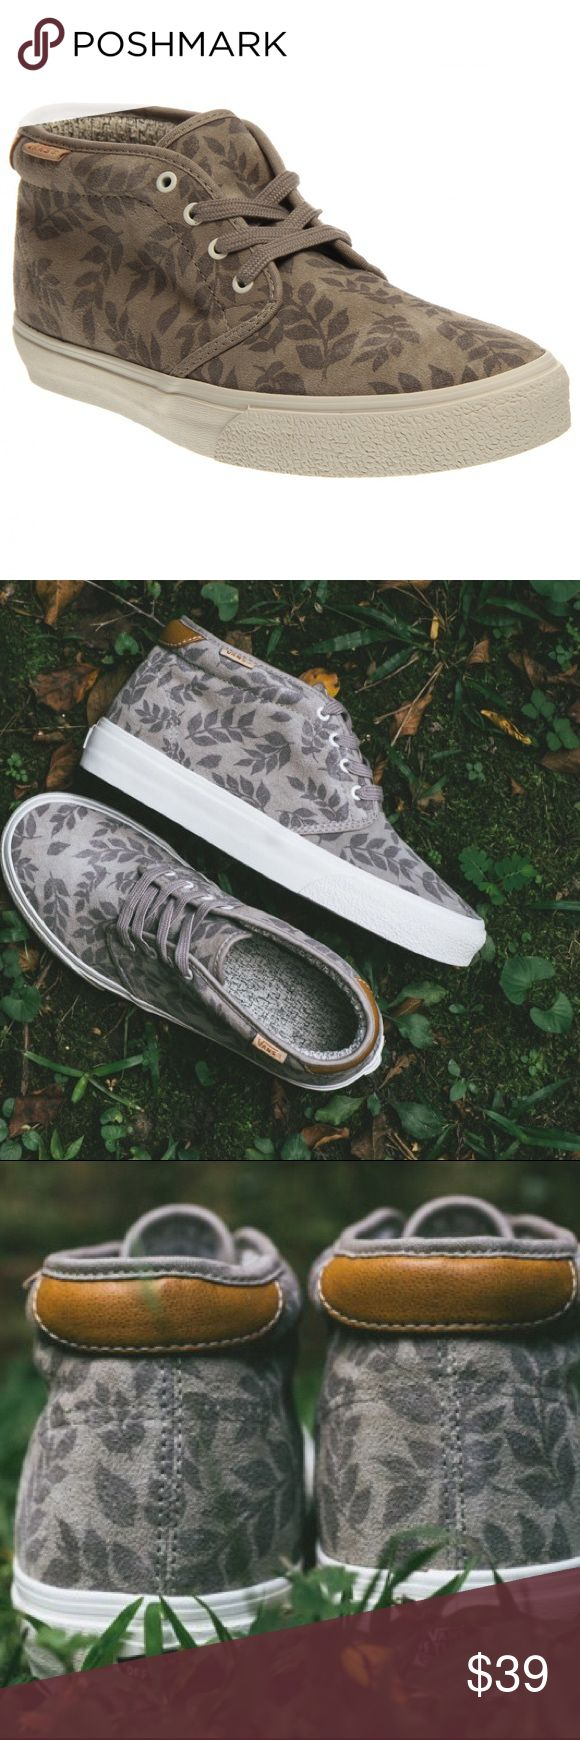 Vans Chukka Boot 69 CA Aluminum Leaf Suedes' -High-grade suede upper with tonal digital leaf pattern for a stylish look.                                          -Lac up closure for a secure fit -Leather Vans flags at collar -Padded collar for added comfort -Durable rubber outsole for maximum grip Vans Shoes Sneakers